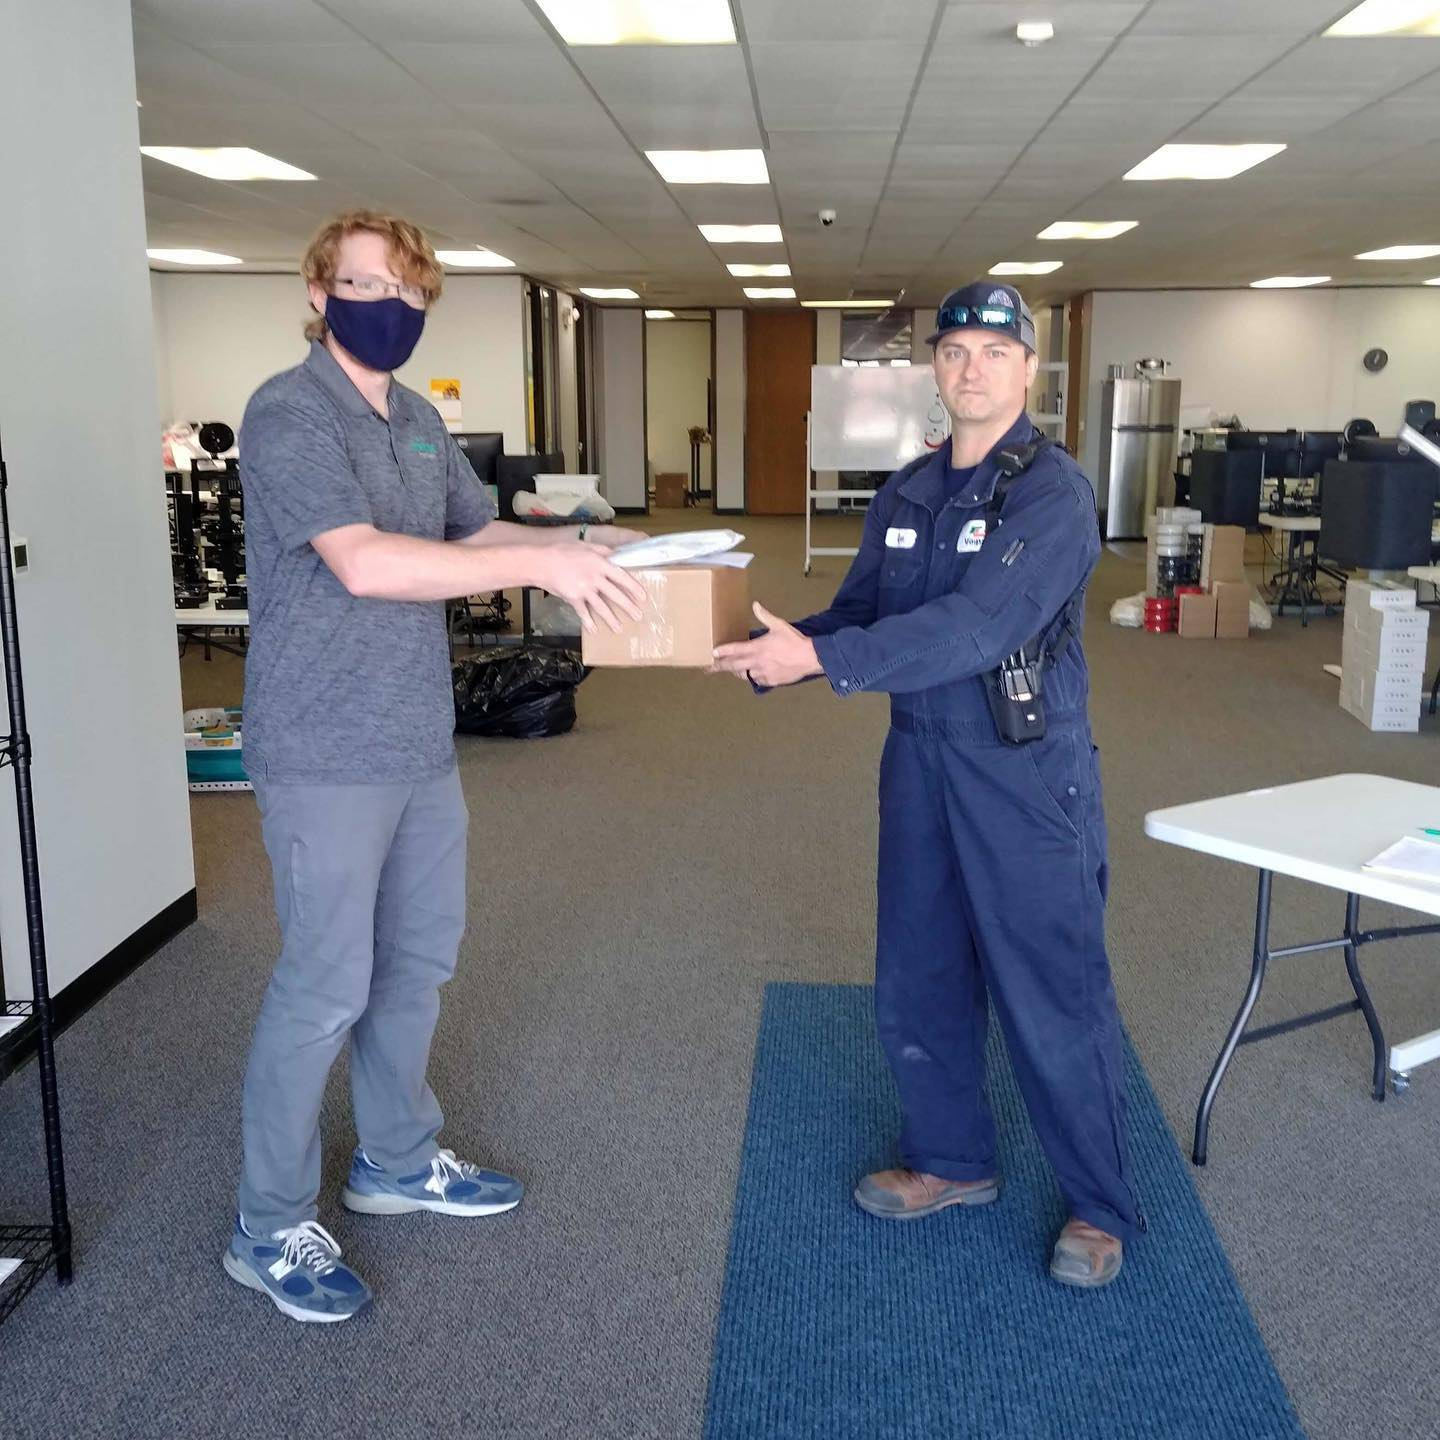 Donate PPE To First Responders